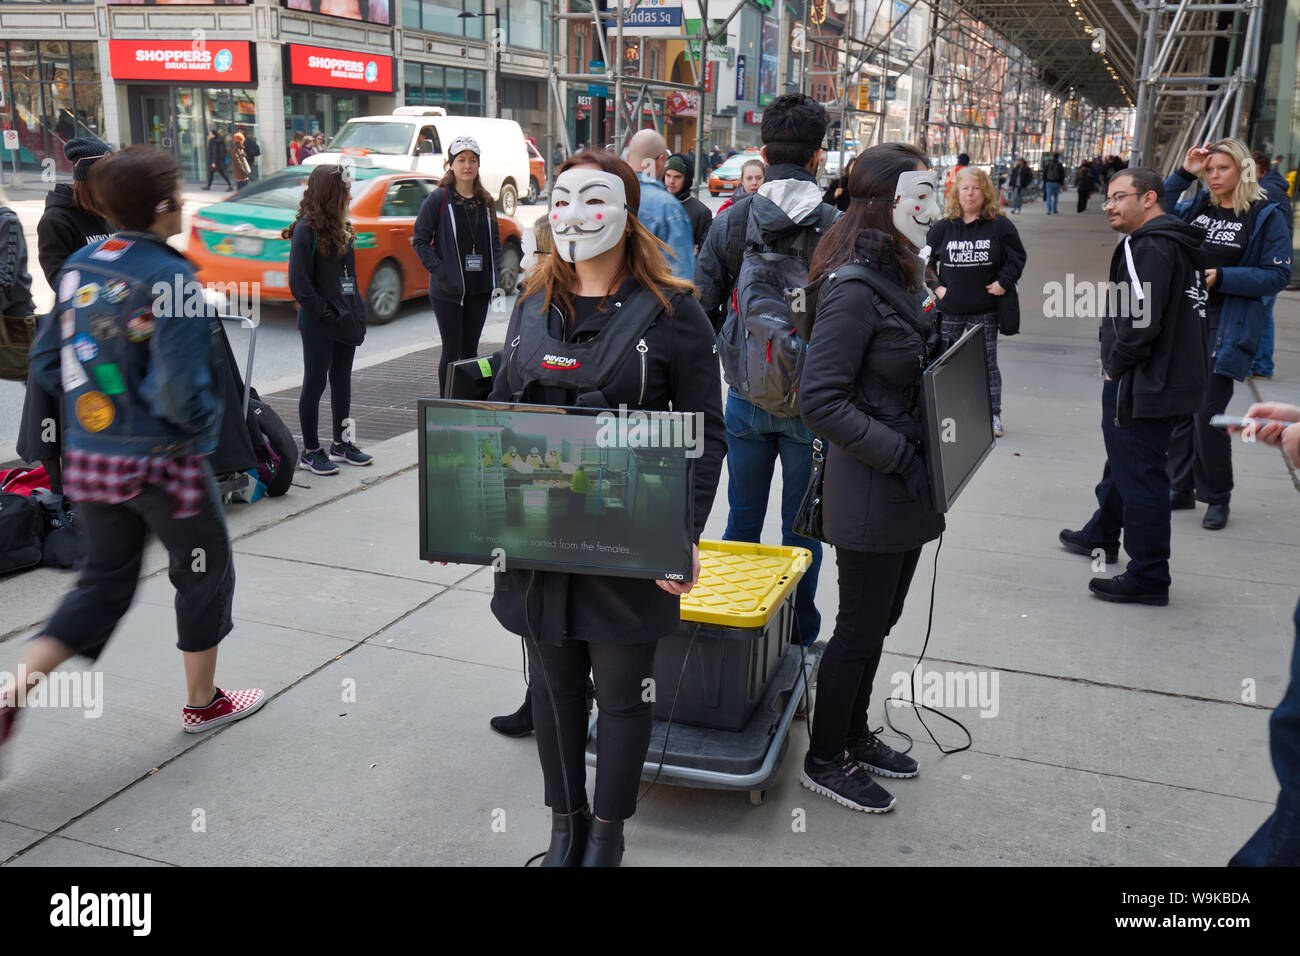 Toronto, Ontario, Canada-20 March, 2019: Protest against animal cruelty by a group of young activists wearing anonymous masks and holding TV sets that Stock Photo